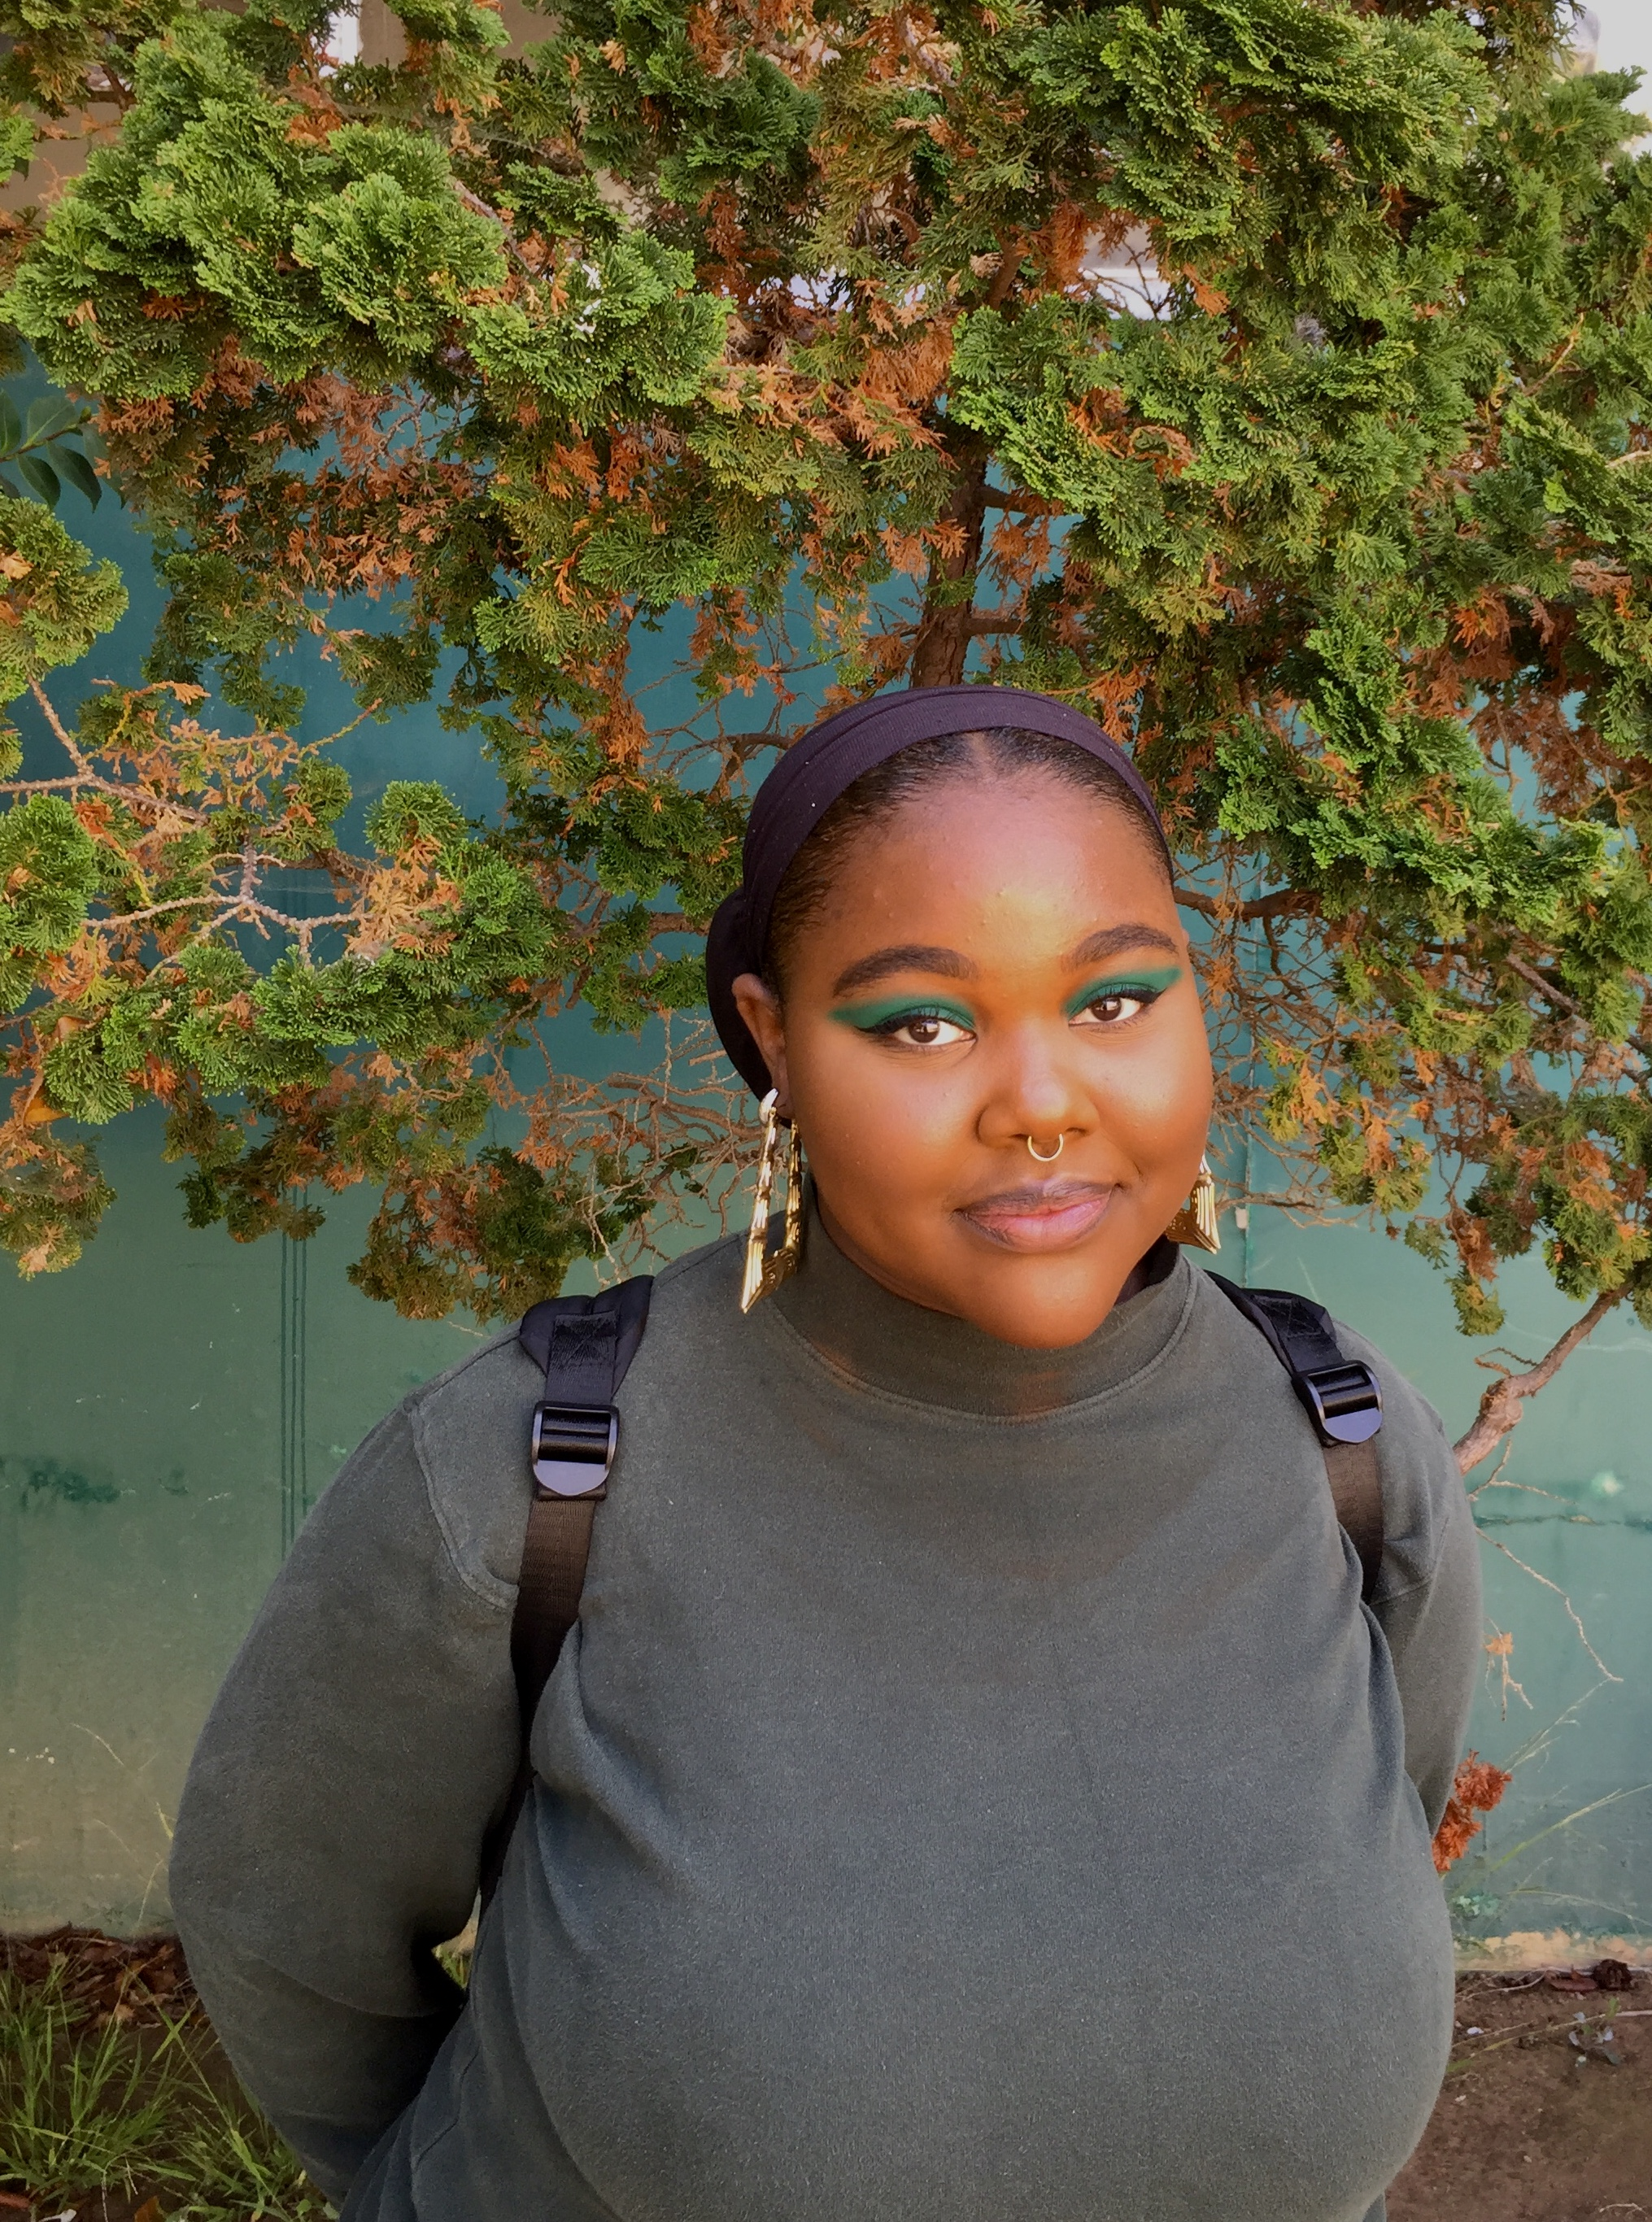 Azell Aneya Lawson poses for her photo at Santa Monica College in Santa Monica, California, on September 11, 2018. (Jazz Boothby/ Corsair Staff)